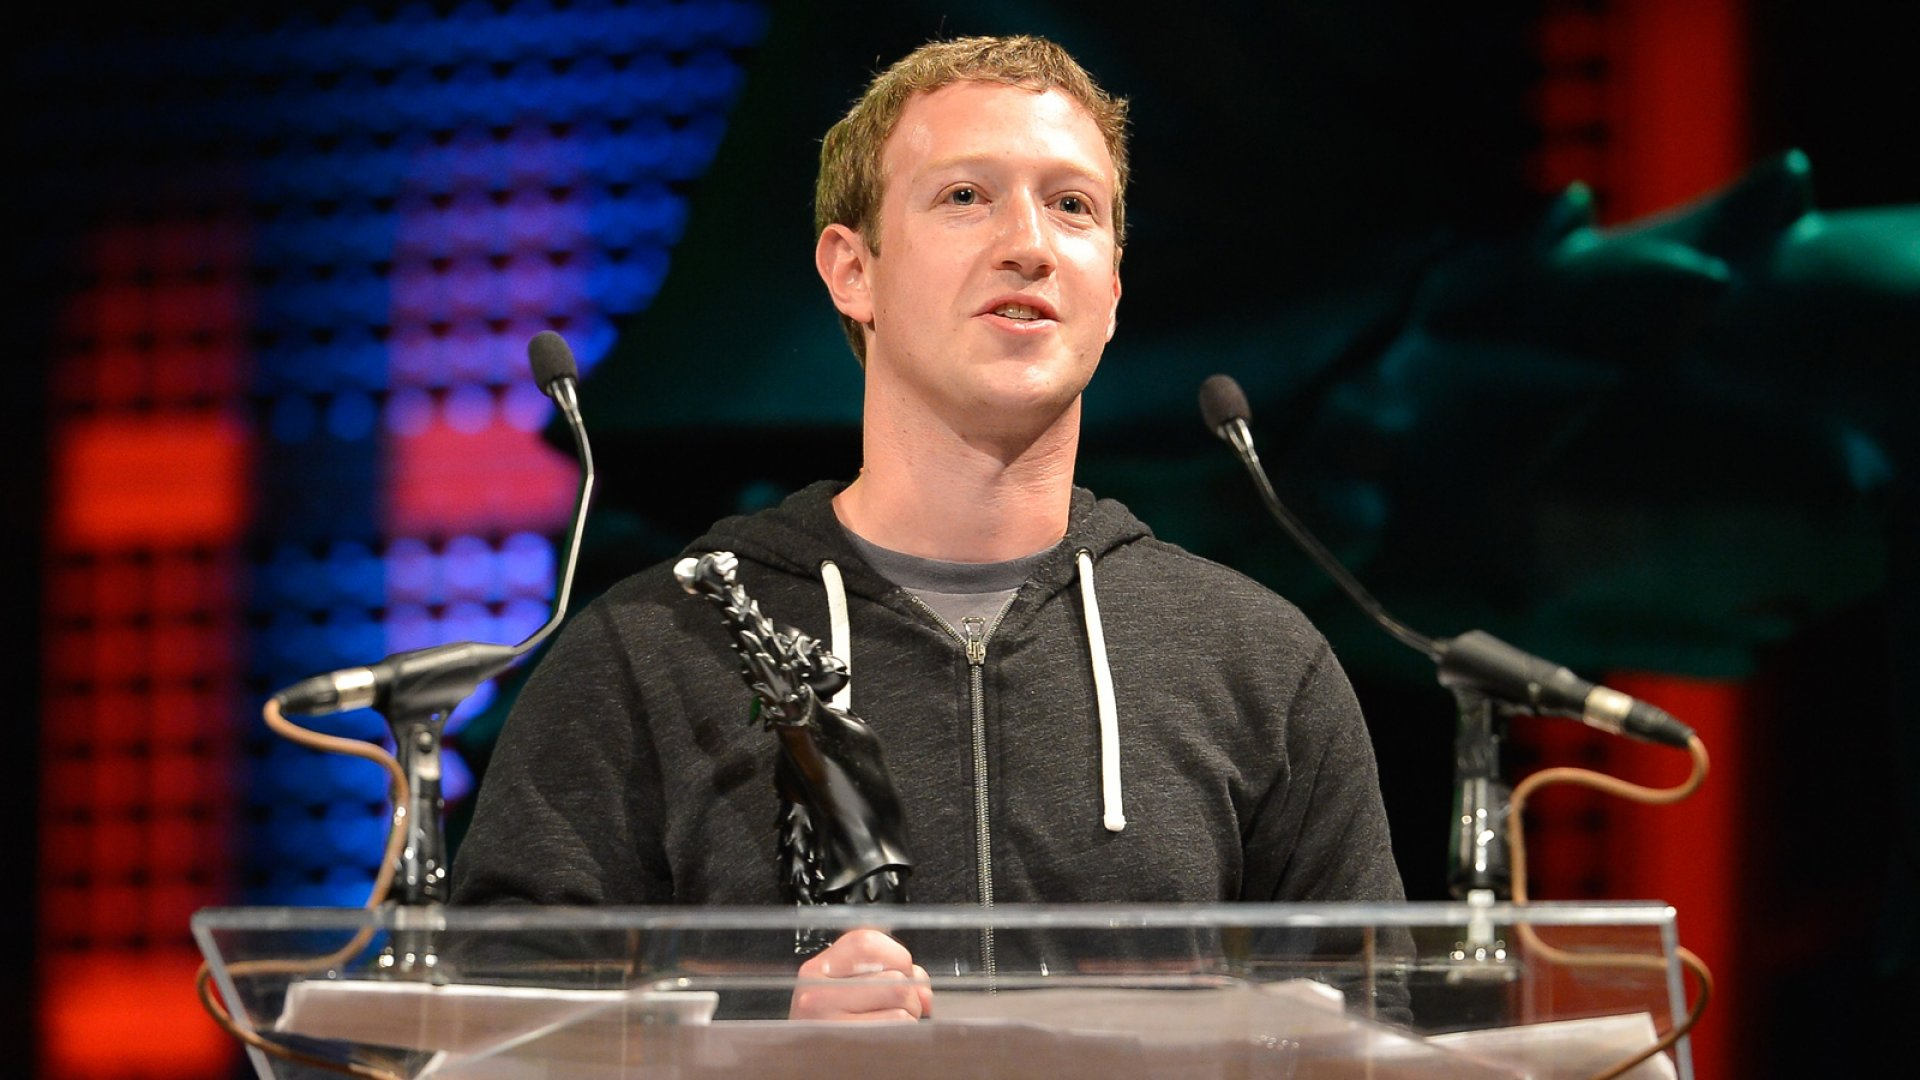 To Maintain Control of Your Company After Its IPO, Follow Mark Zuckerberg's Lead